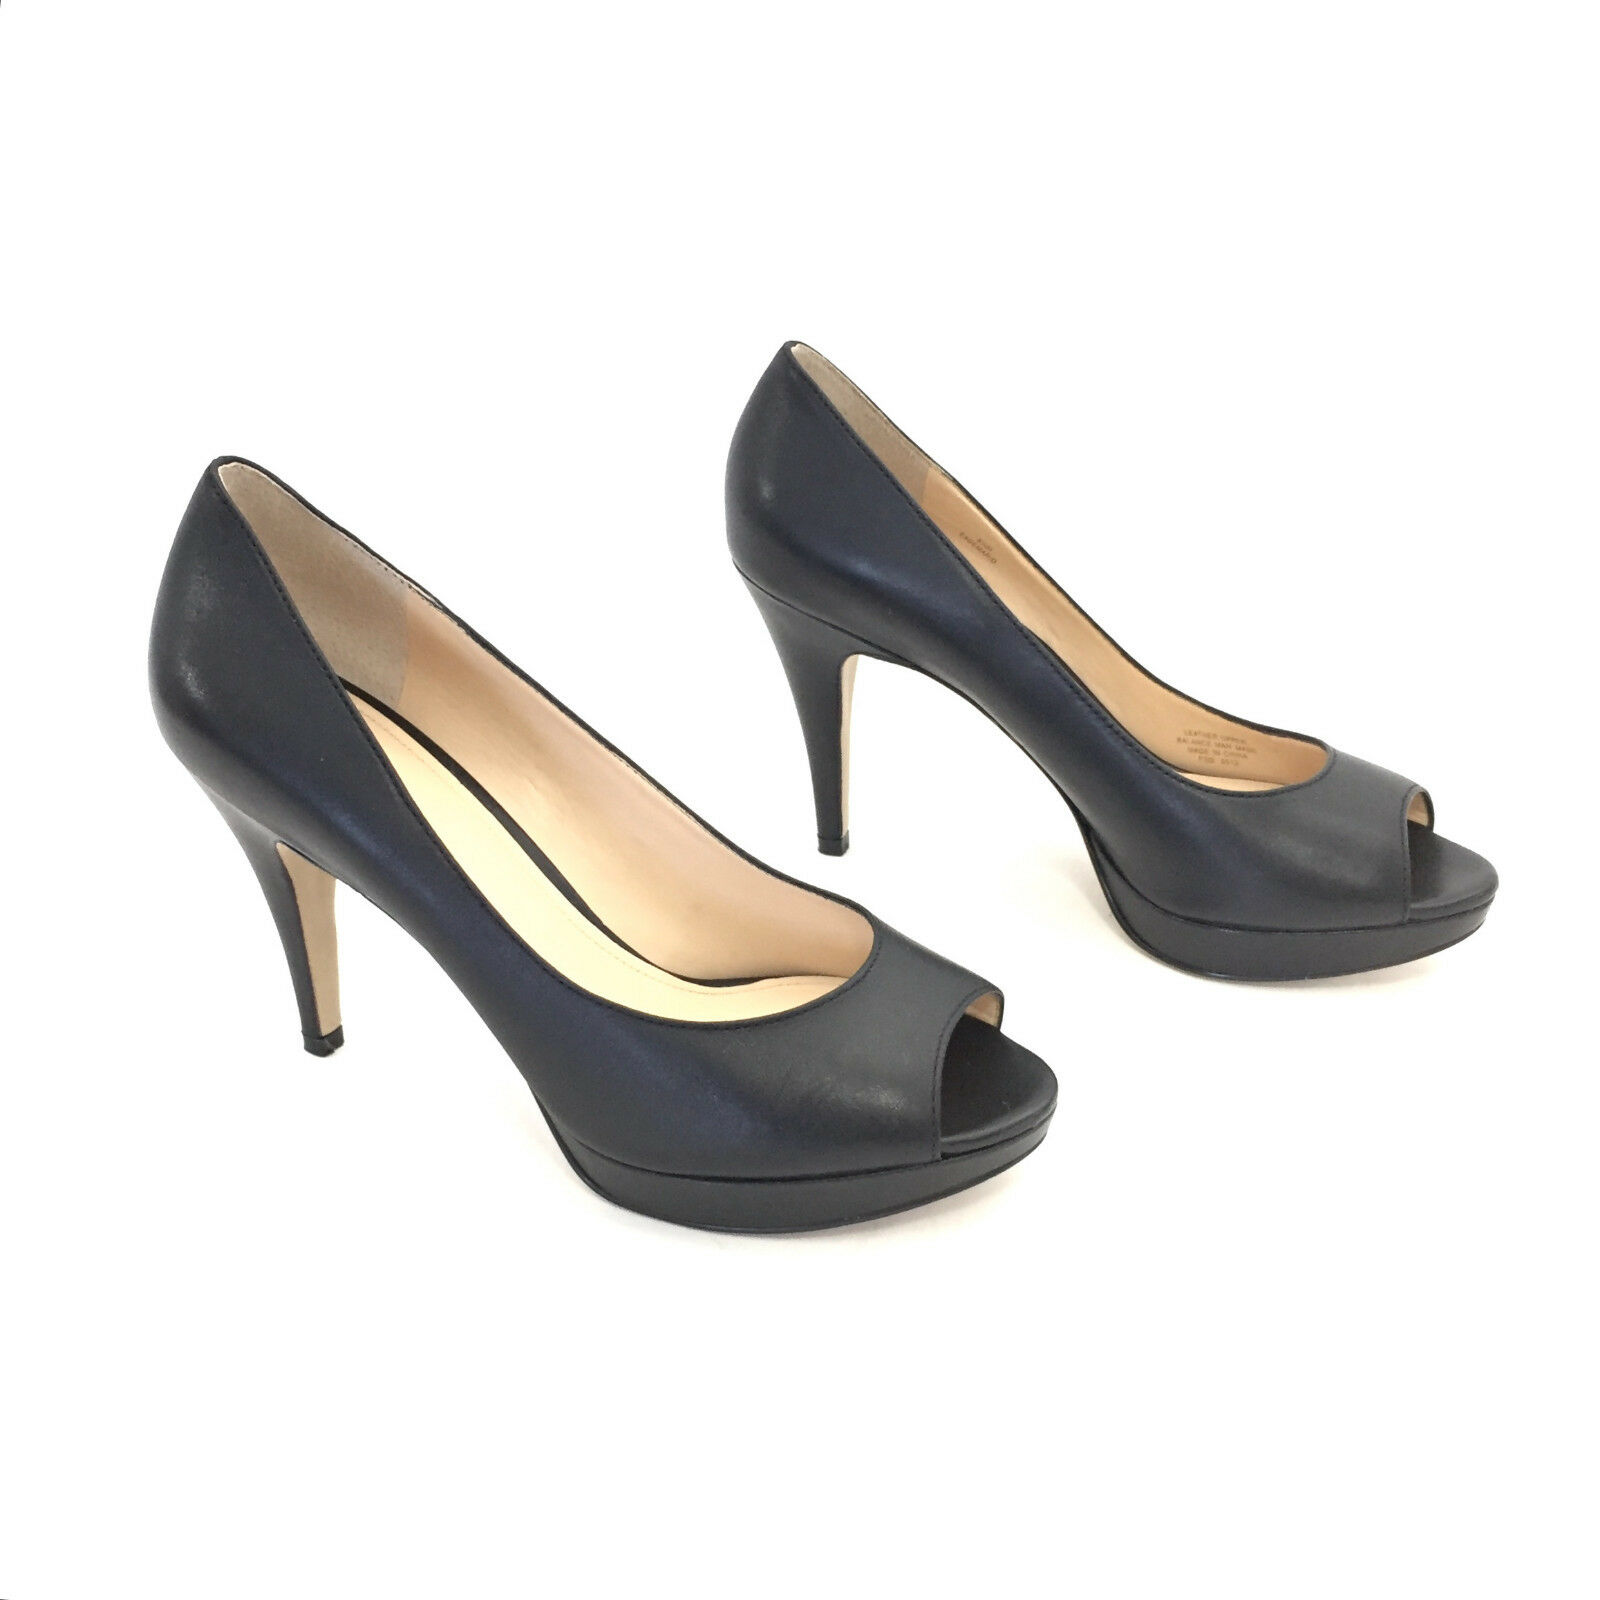 0788407093753 Women's Enzo Angiolini Black Leather Open Heels 8.5 M Toe Size ...